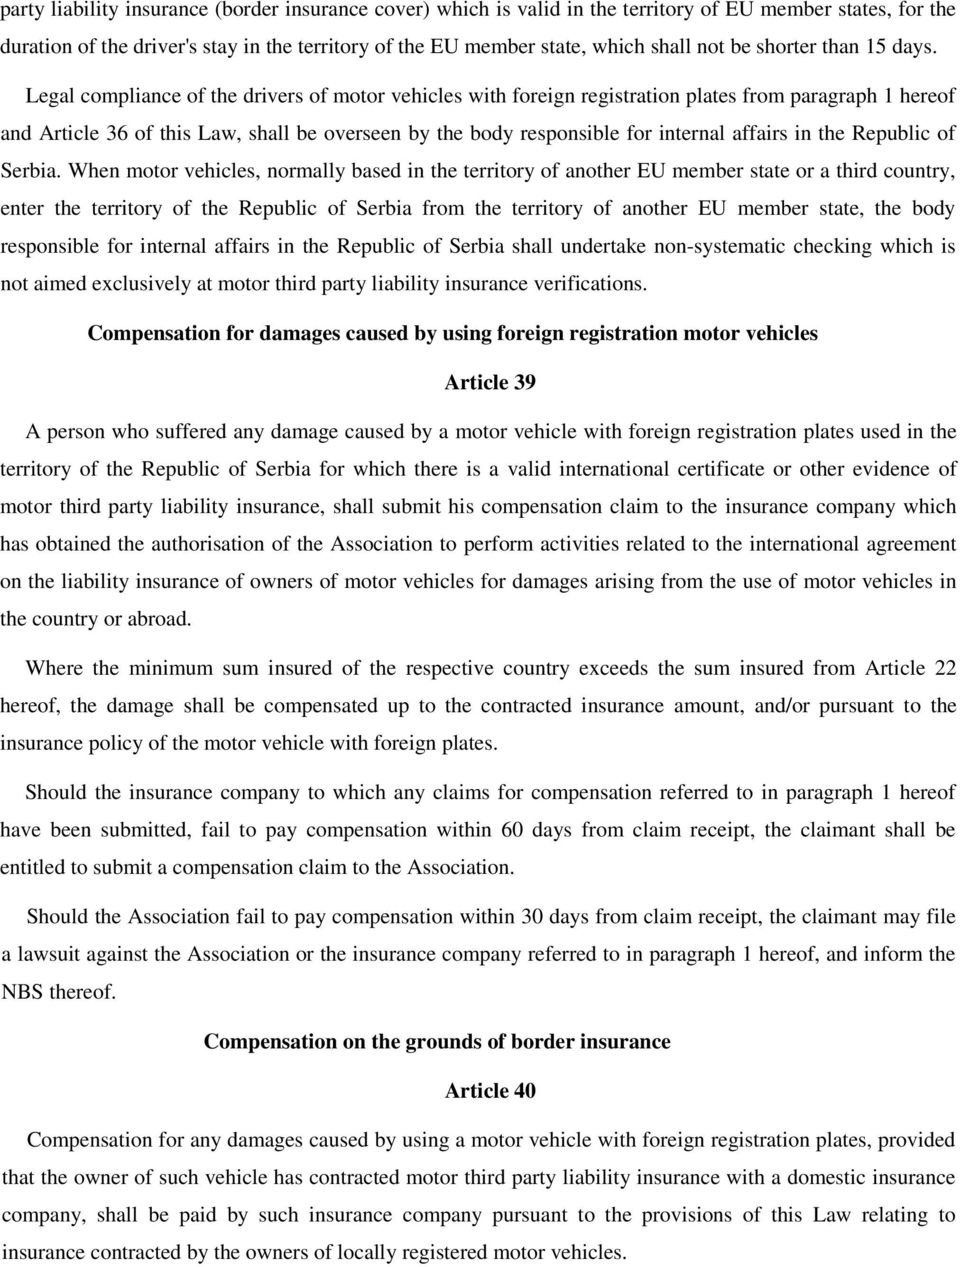 Legal compliance of the drivers of motor vehicles with foreign registration plates from paragraph 1 hereof and Article 36 of this Law, shall be overseen by the body responsible for internal affairs